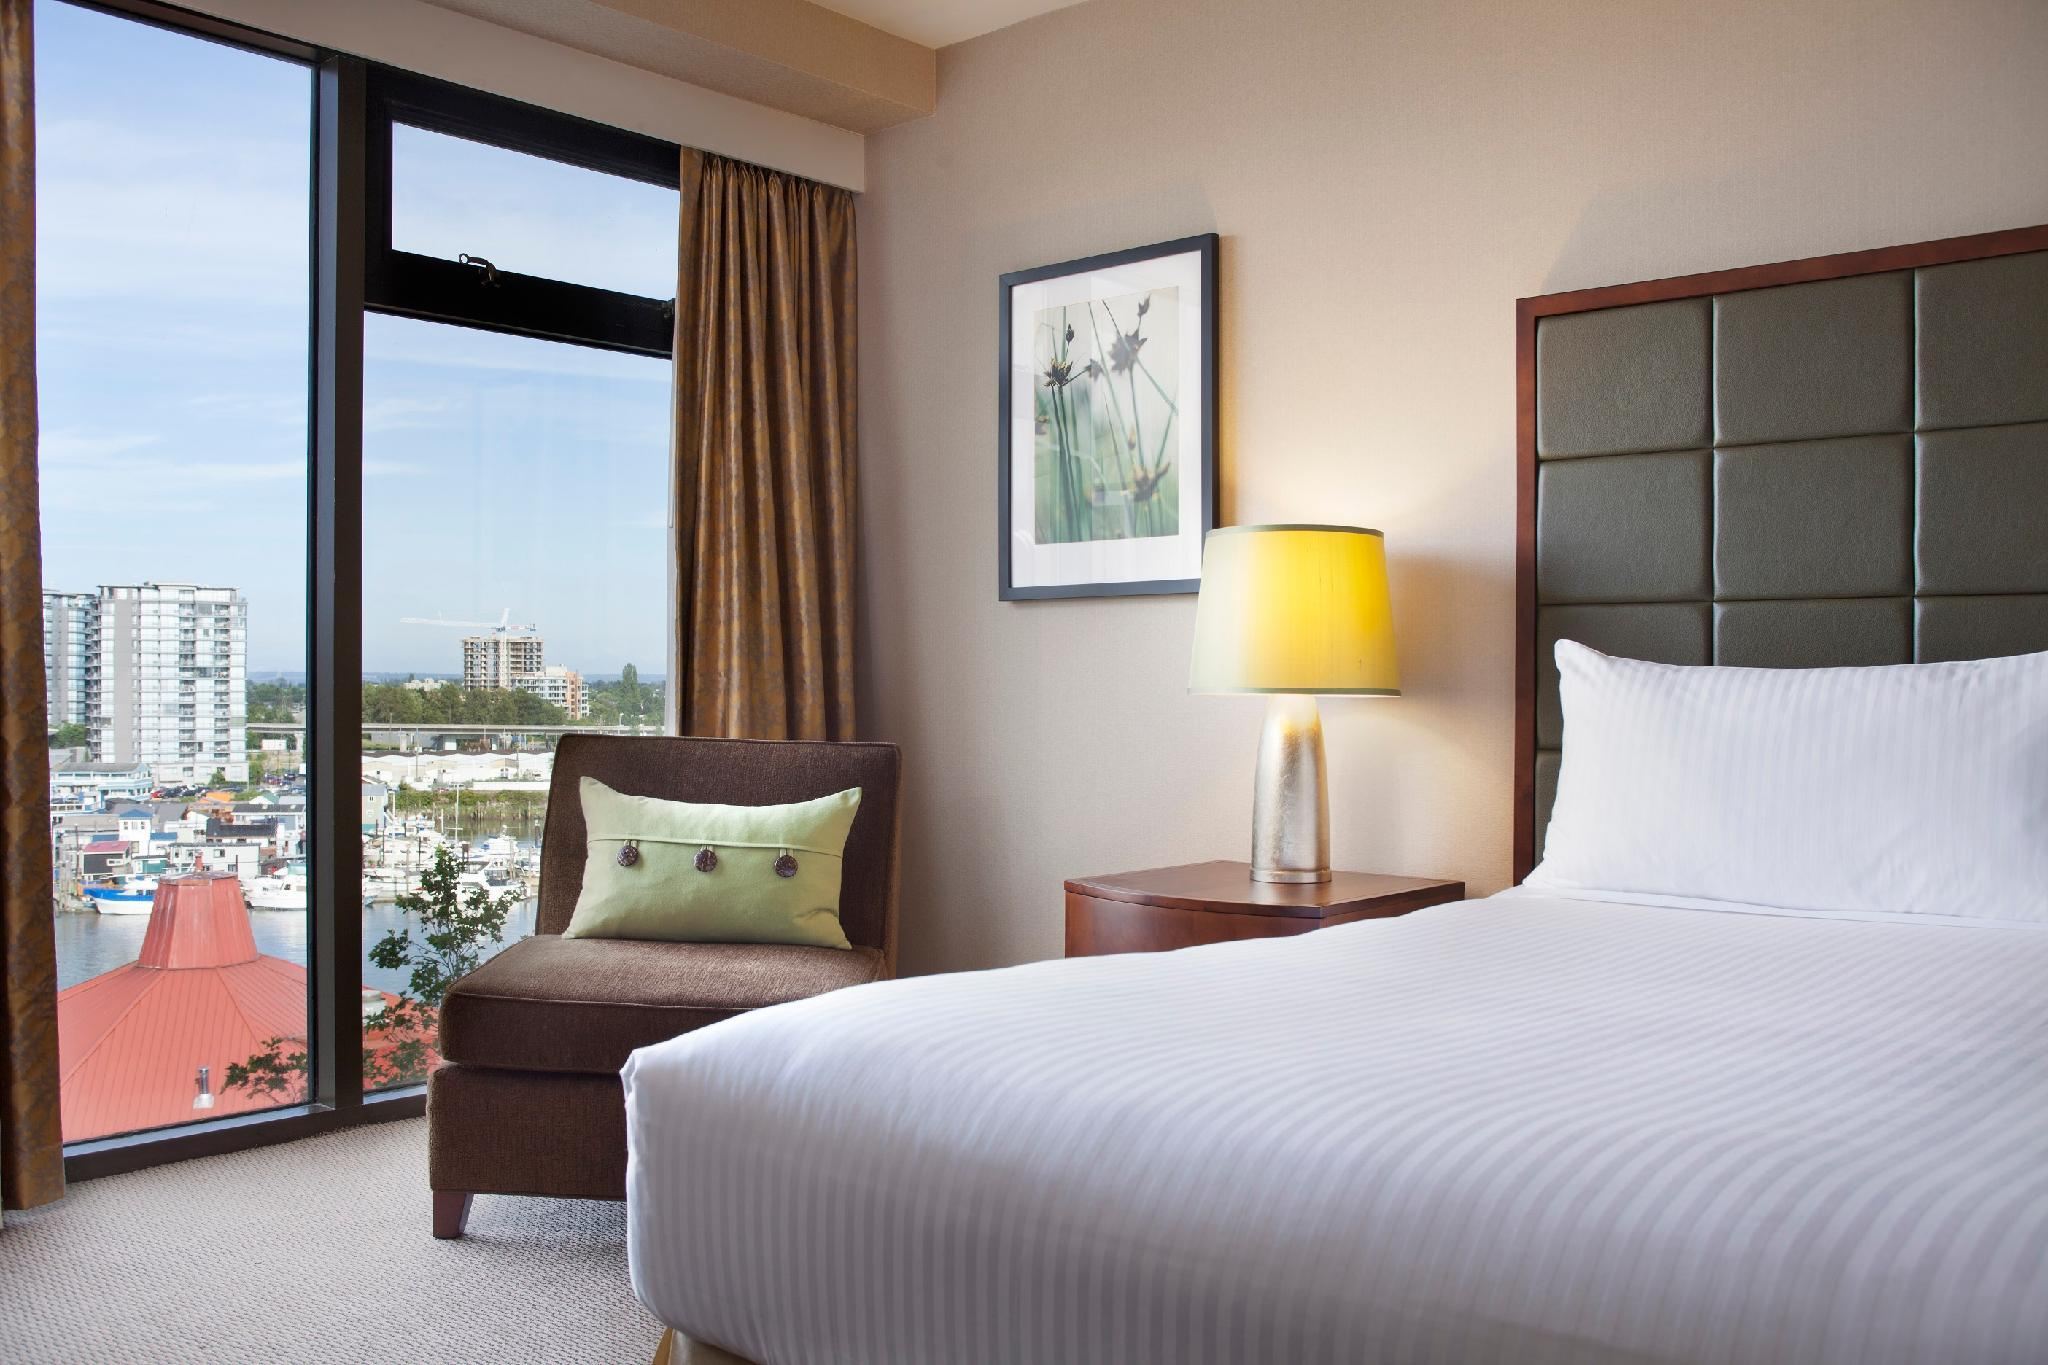 Kamar Deluxe King dengan Pemandangan Air (Deluxe King Room with Water View)